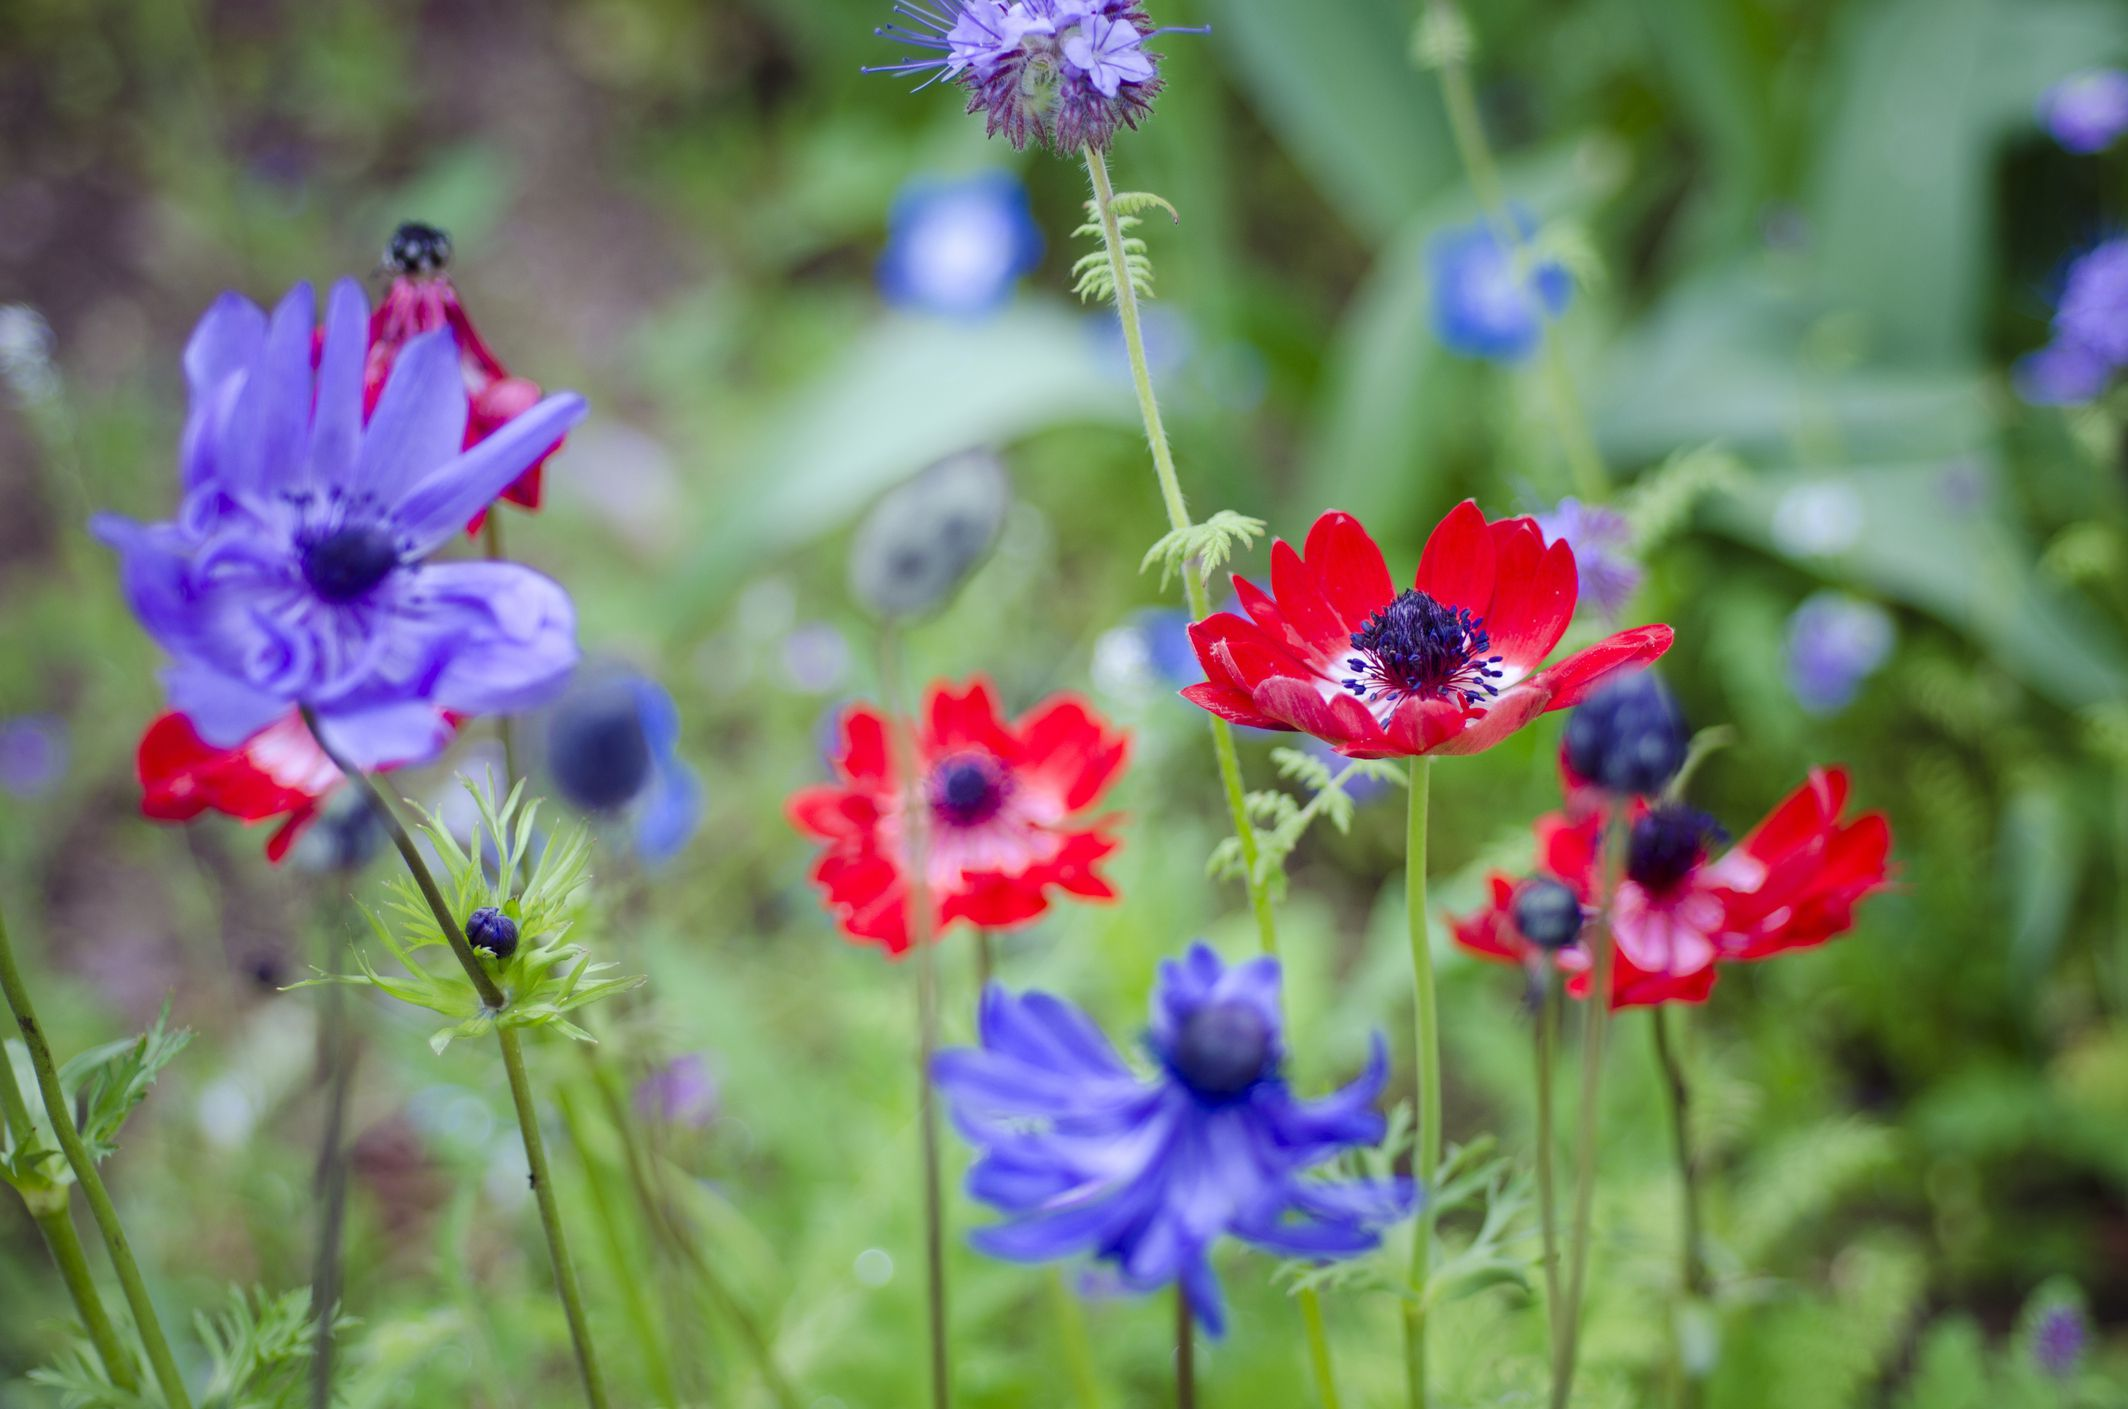 Ananomie Videos how to grow and care for anemone flowers